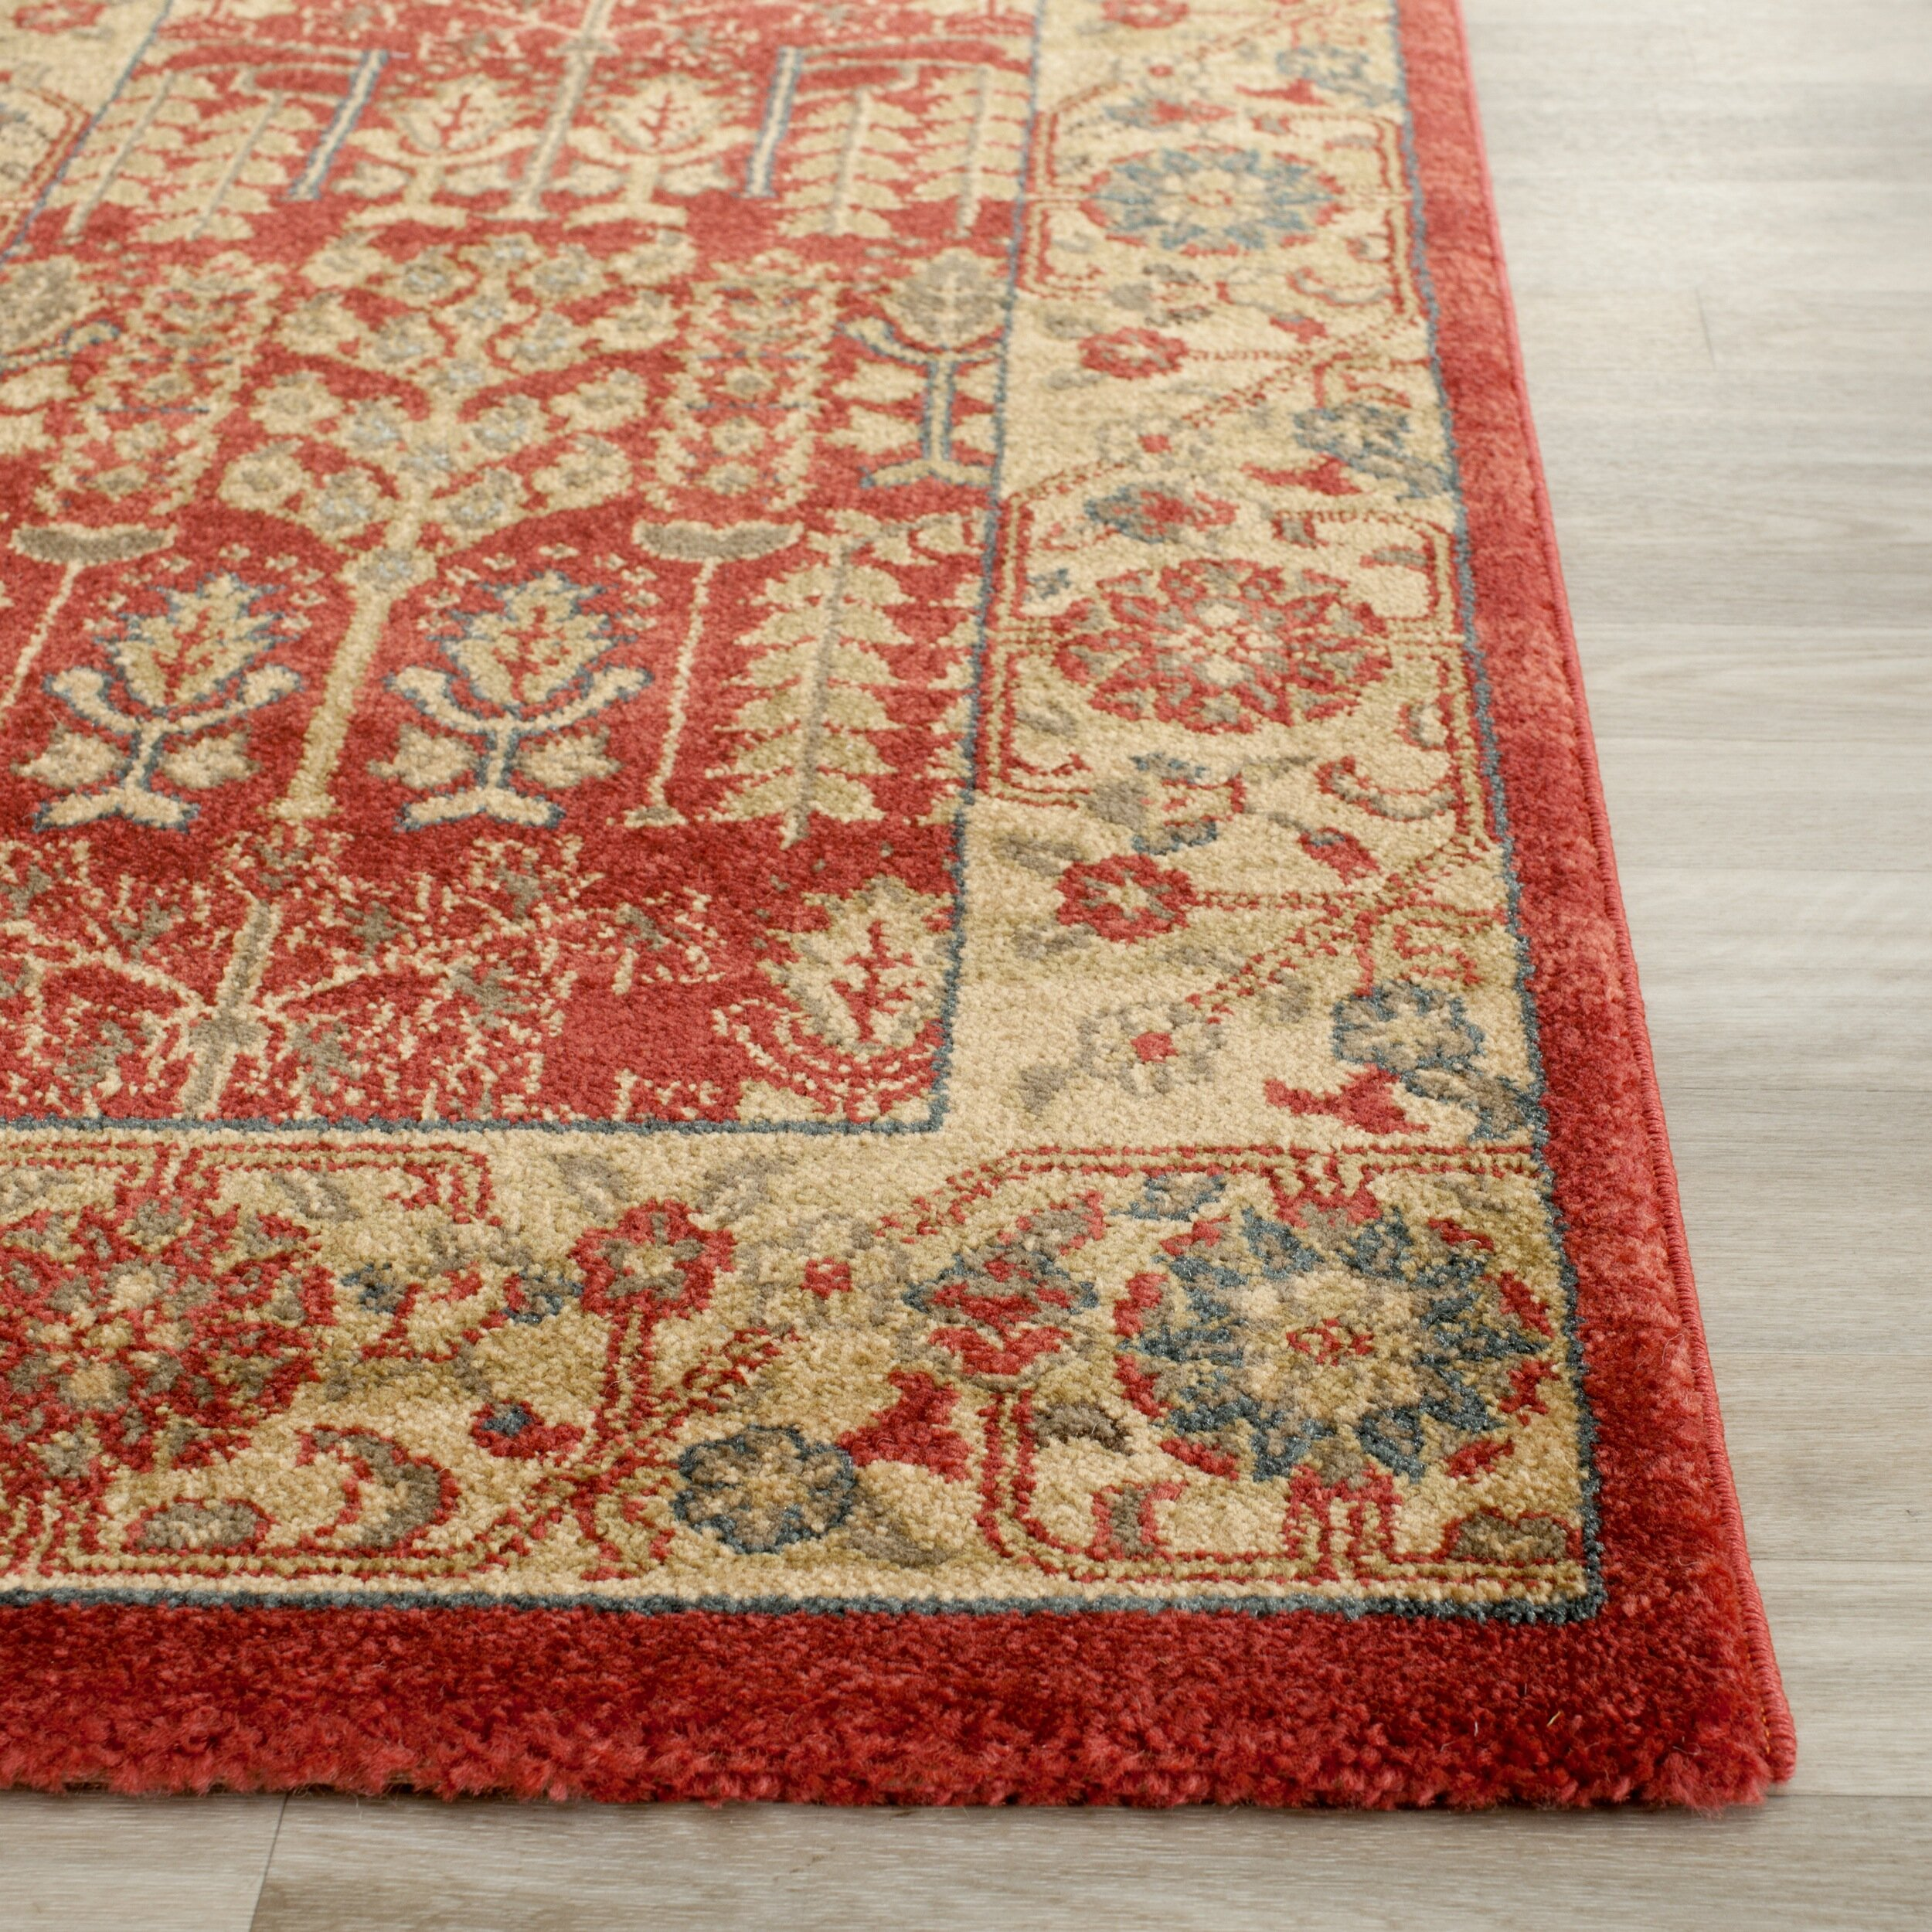 Safavieh mahal red natural area rug reviews wayfair for Dining room rugs 9x12